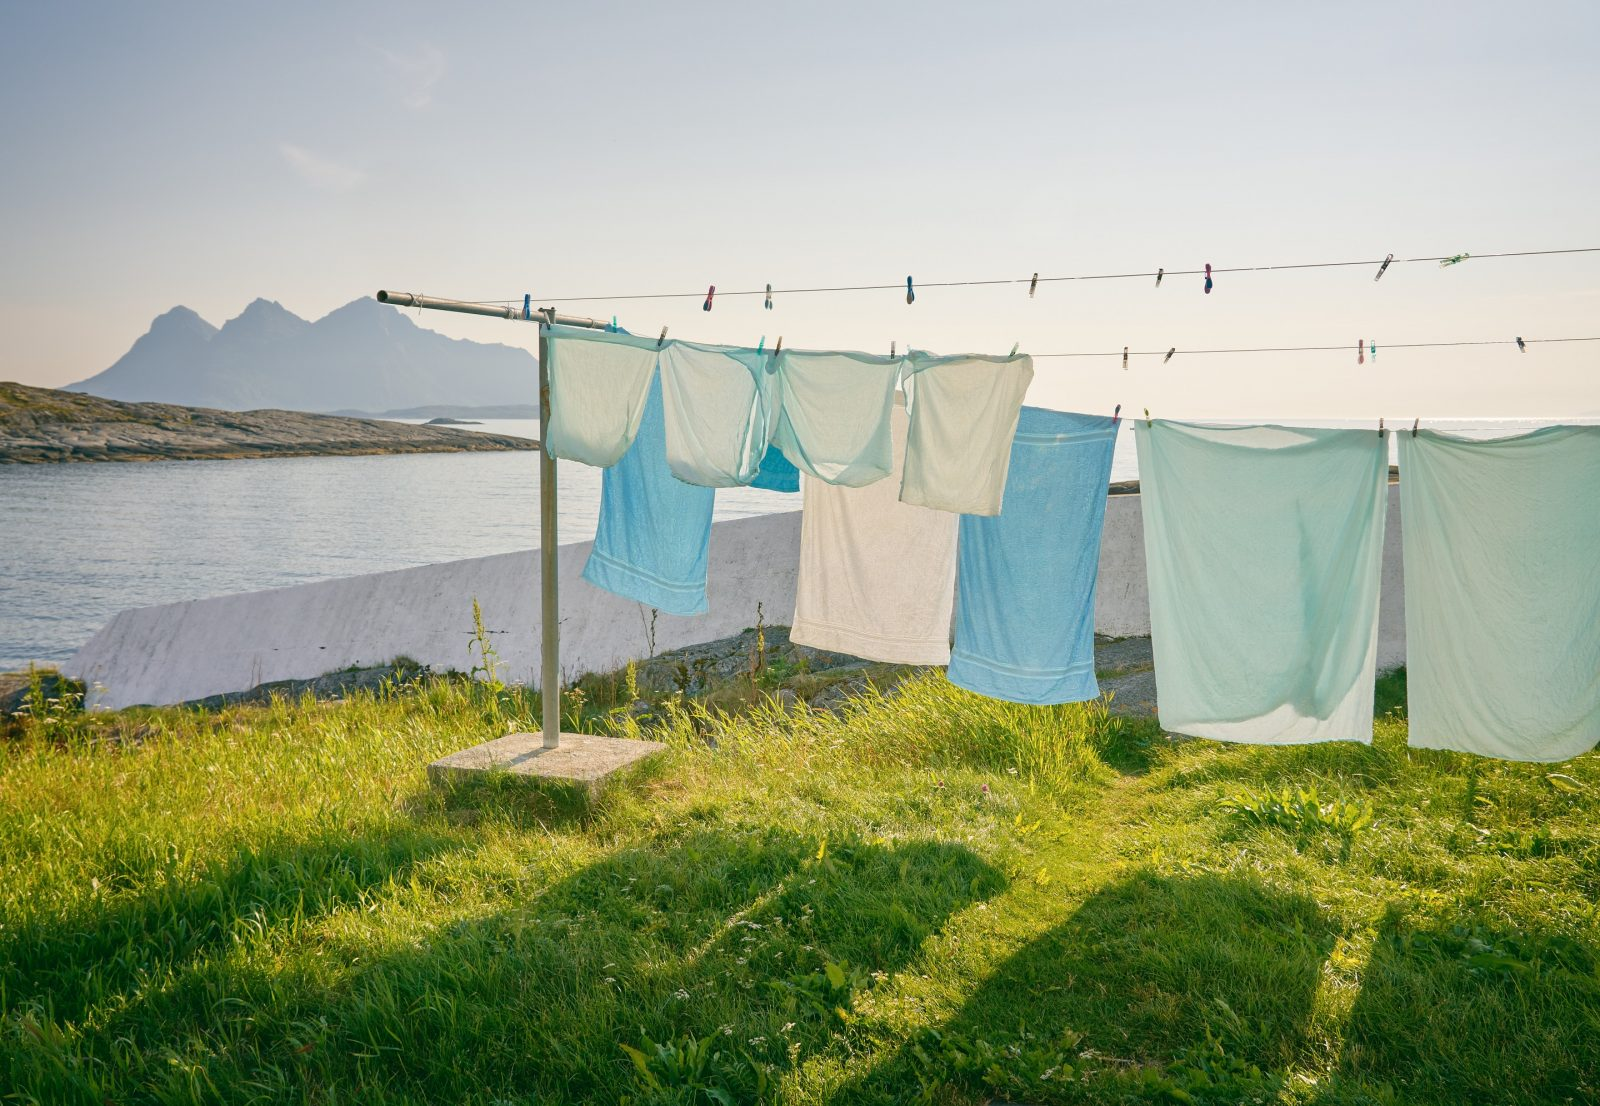 Clothes drying outside on a washing line